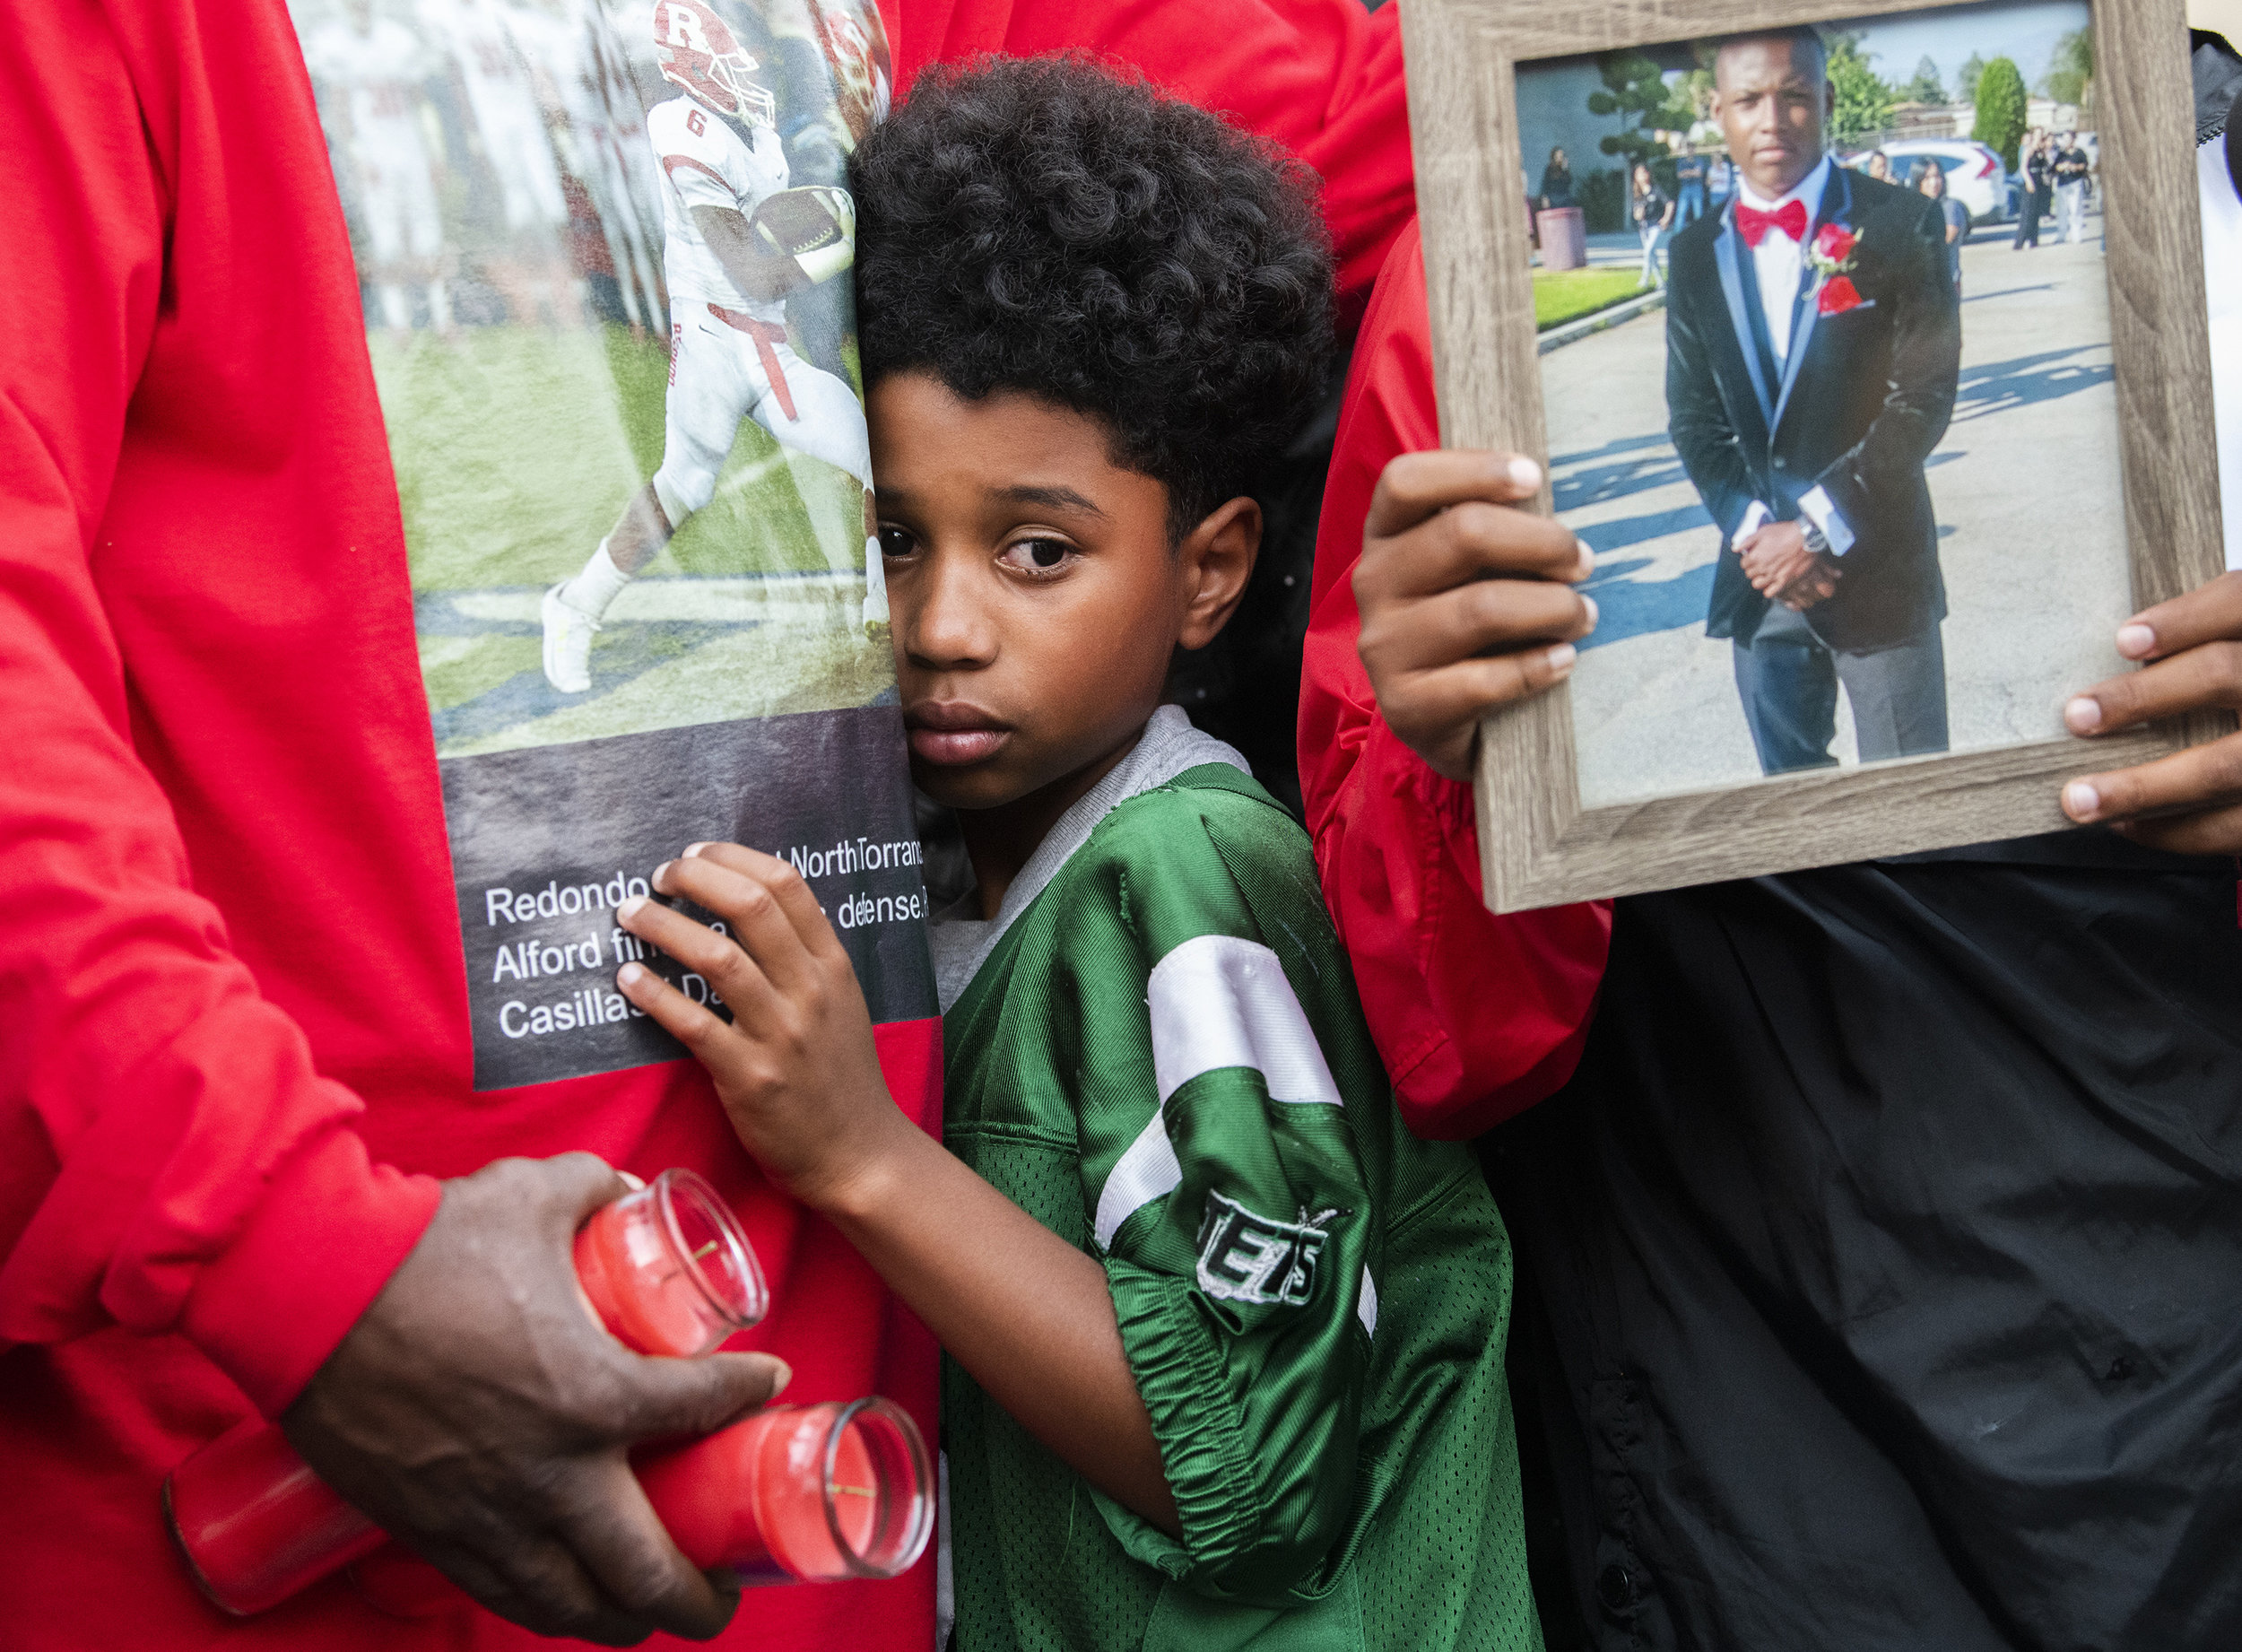 Amari Alford, 10, hugs his father during a vigil for his older brother Guy Alford III, 20, who was shot and killed in a drive-through fast food restaurant the two nights before In Long Beach September 27, 2018.